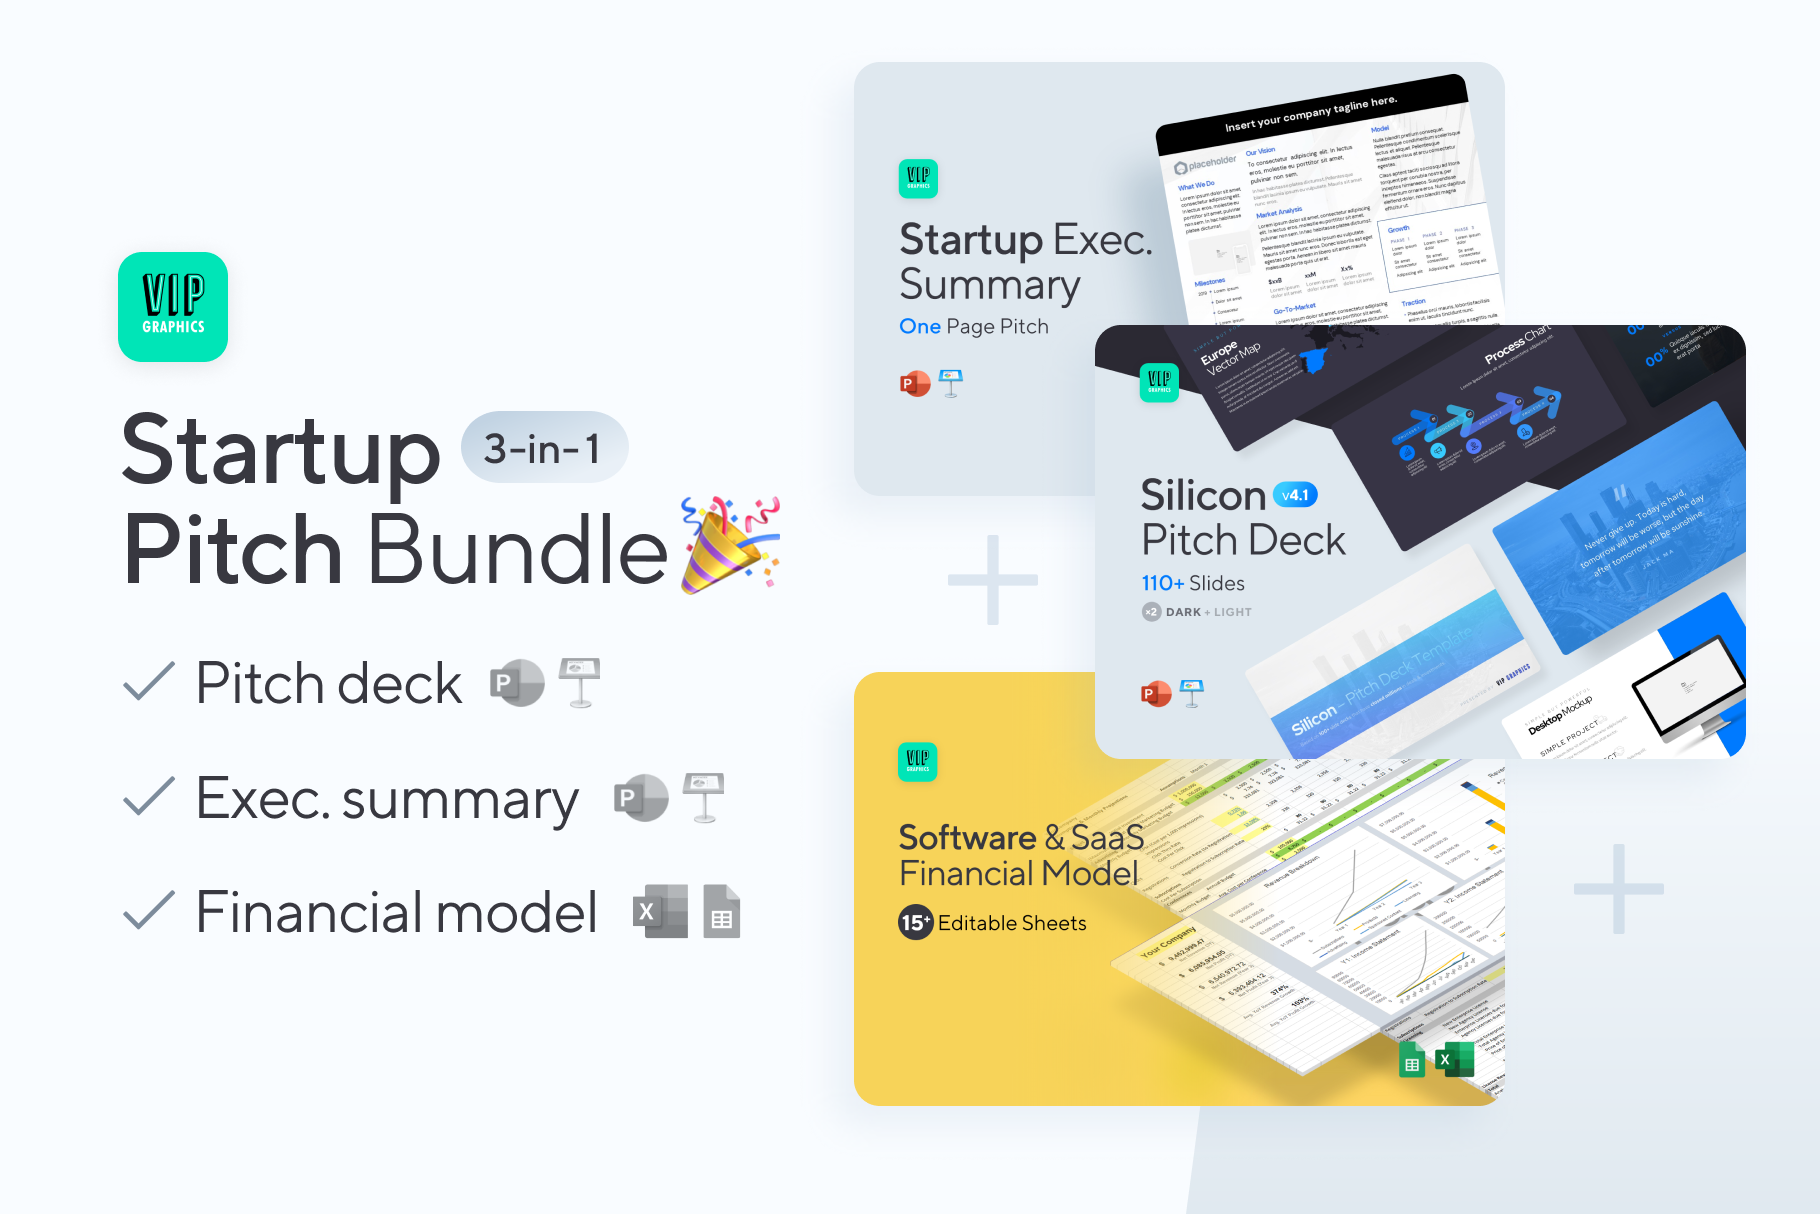 Startup Pitch Bundle: Pitch Deck + Executive summary + Financial model | VIP.graphics